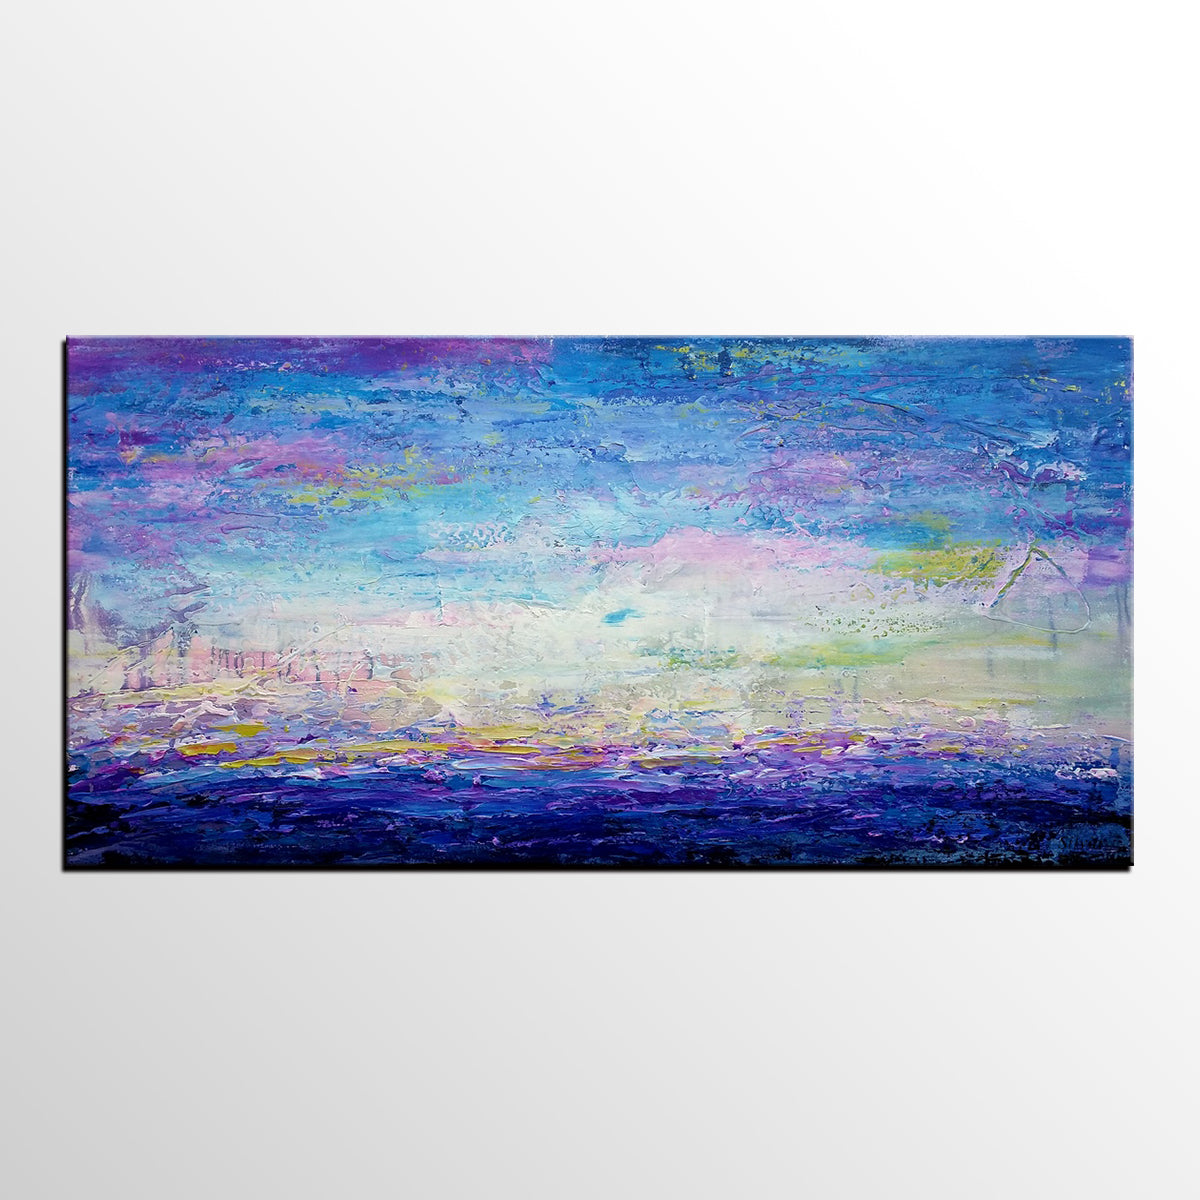 Canvas Art, Abstract Painting, Original Art, Large Art, Oil Painting, Abstract Art, Landscape Painting, Canvas Painting, Large Wall Art